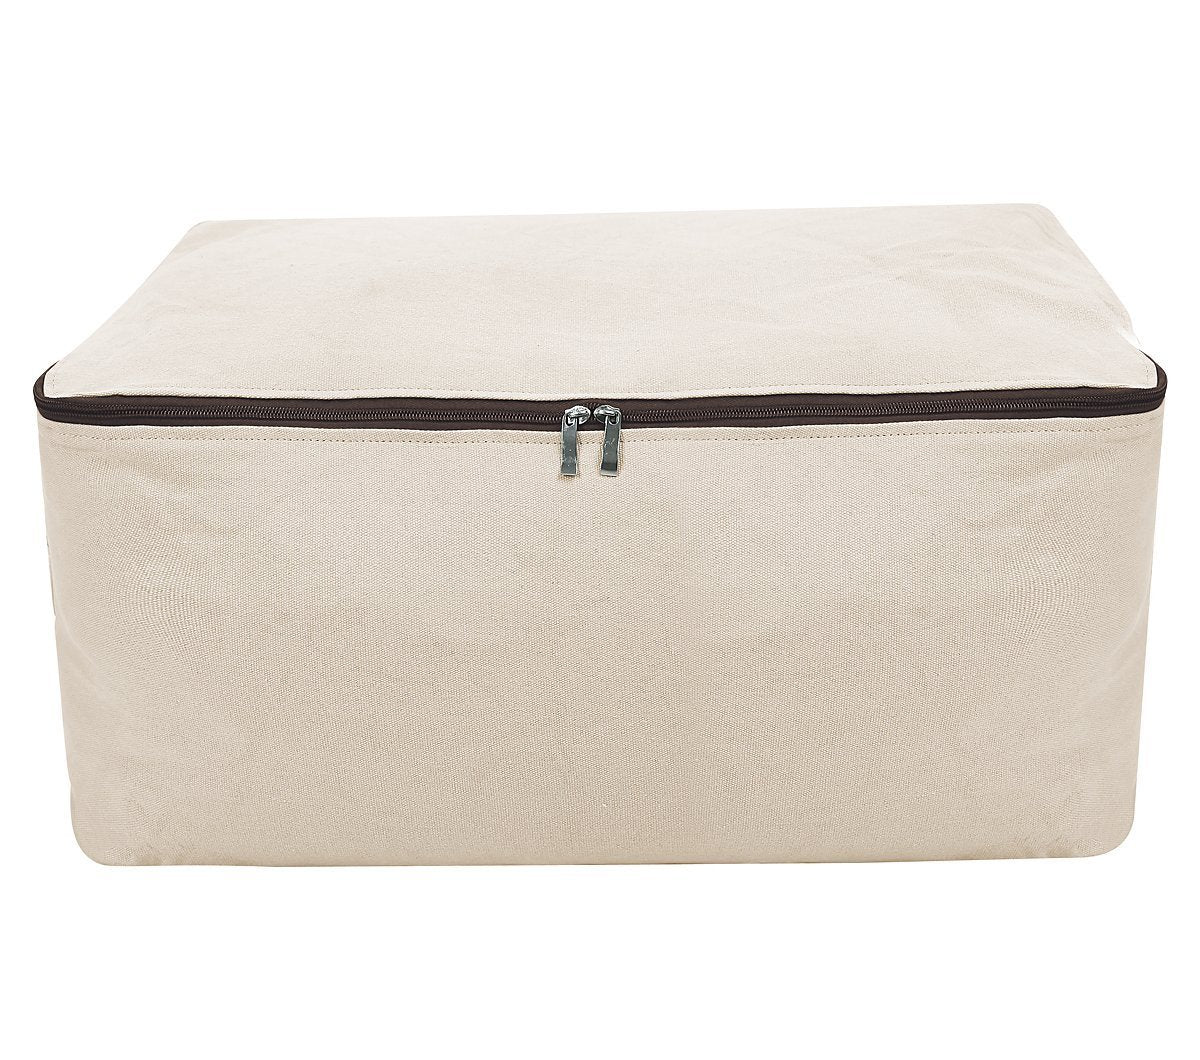 Shop premium canvas big size soft storage bag for bedroom closet winter garment sweaters down jacket coat uniforms suit etc cabinet organizer bag for seasonal clothes storage beige